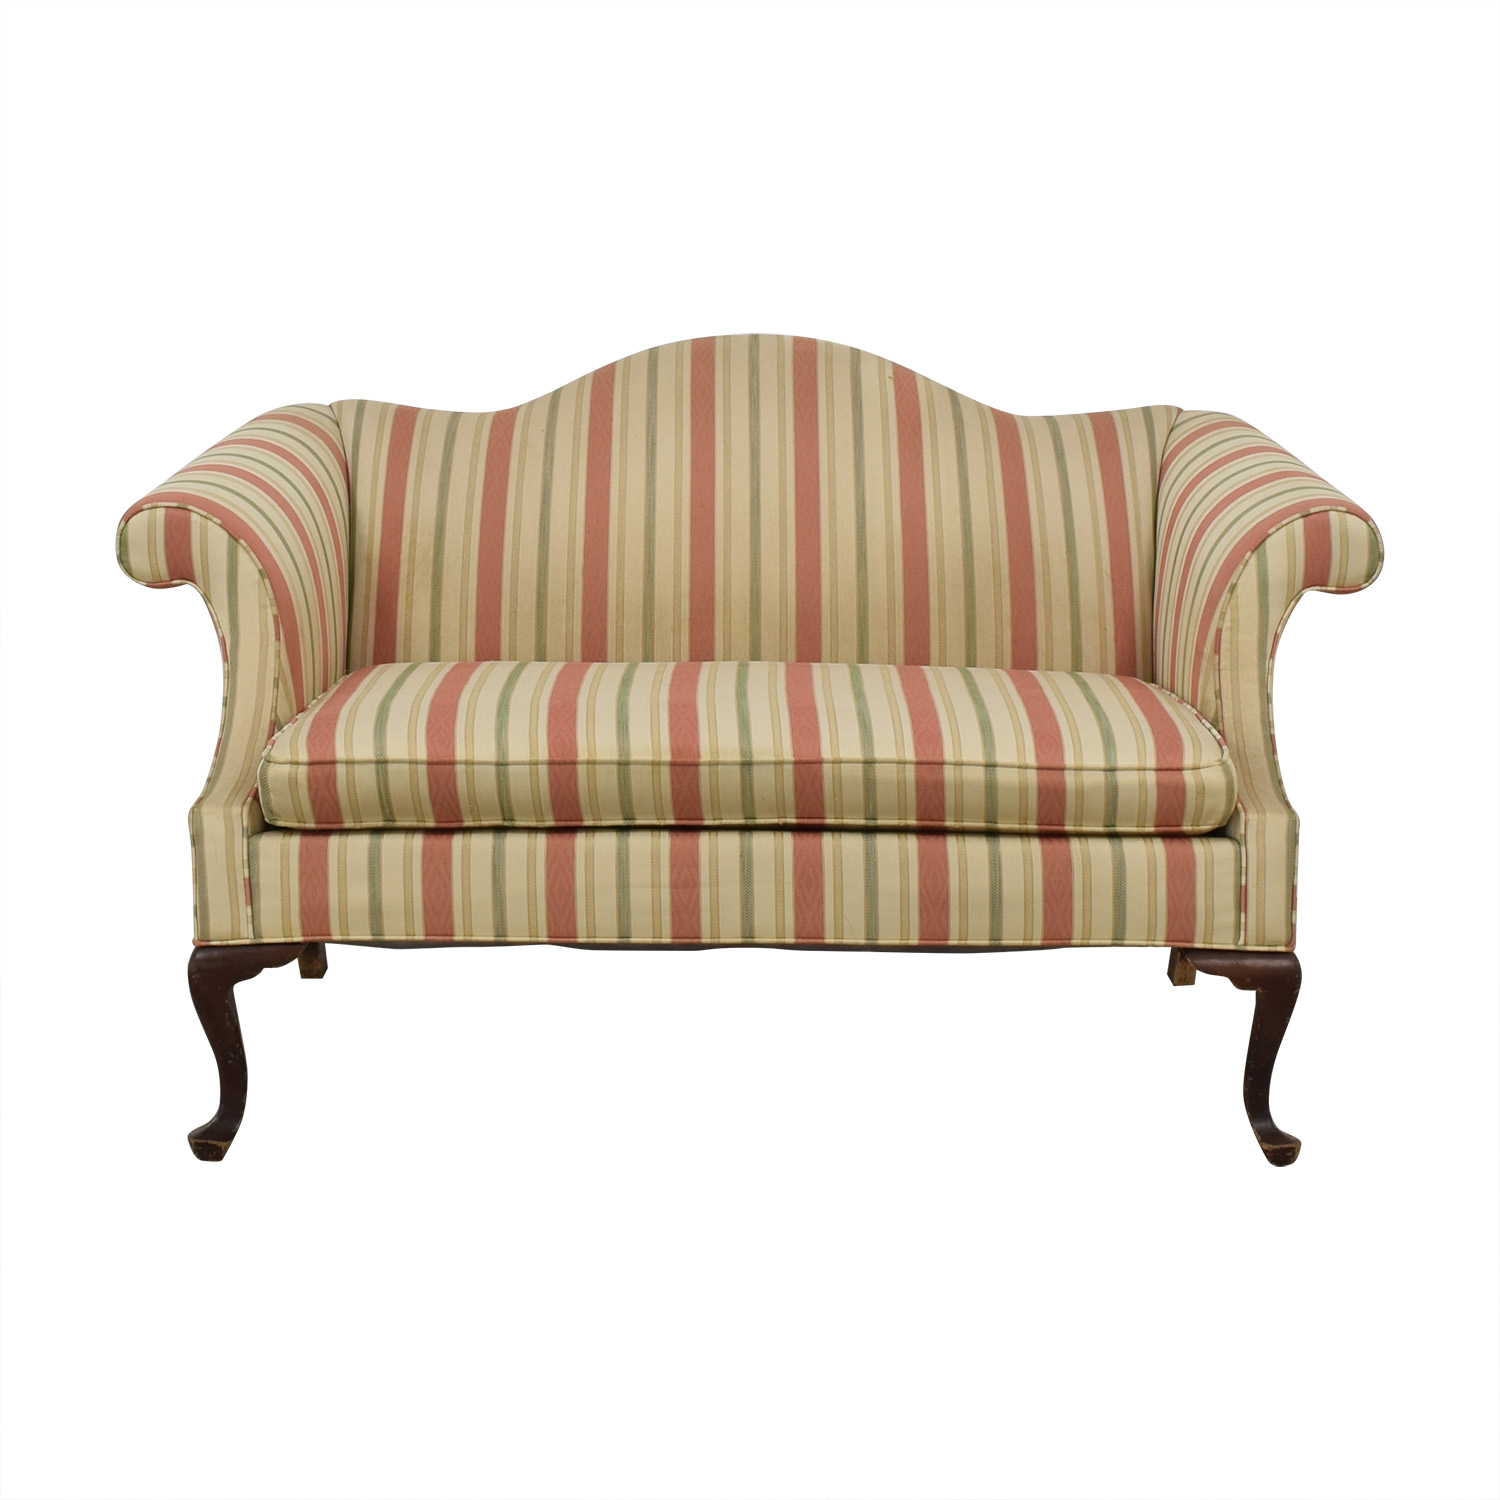 shop Ethan Allen Ethan Allen Queen Anne Loveseat online